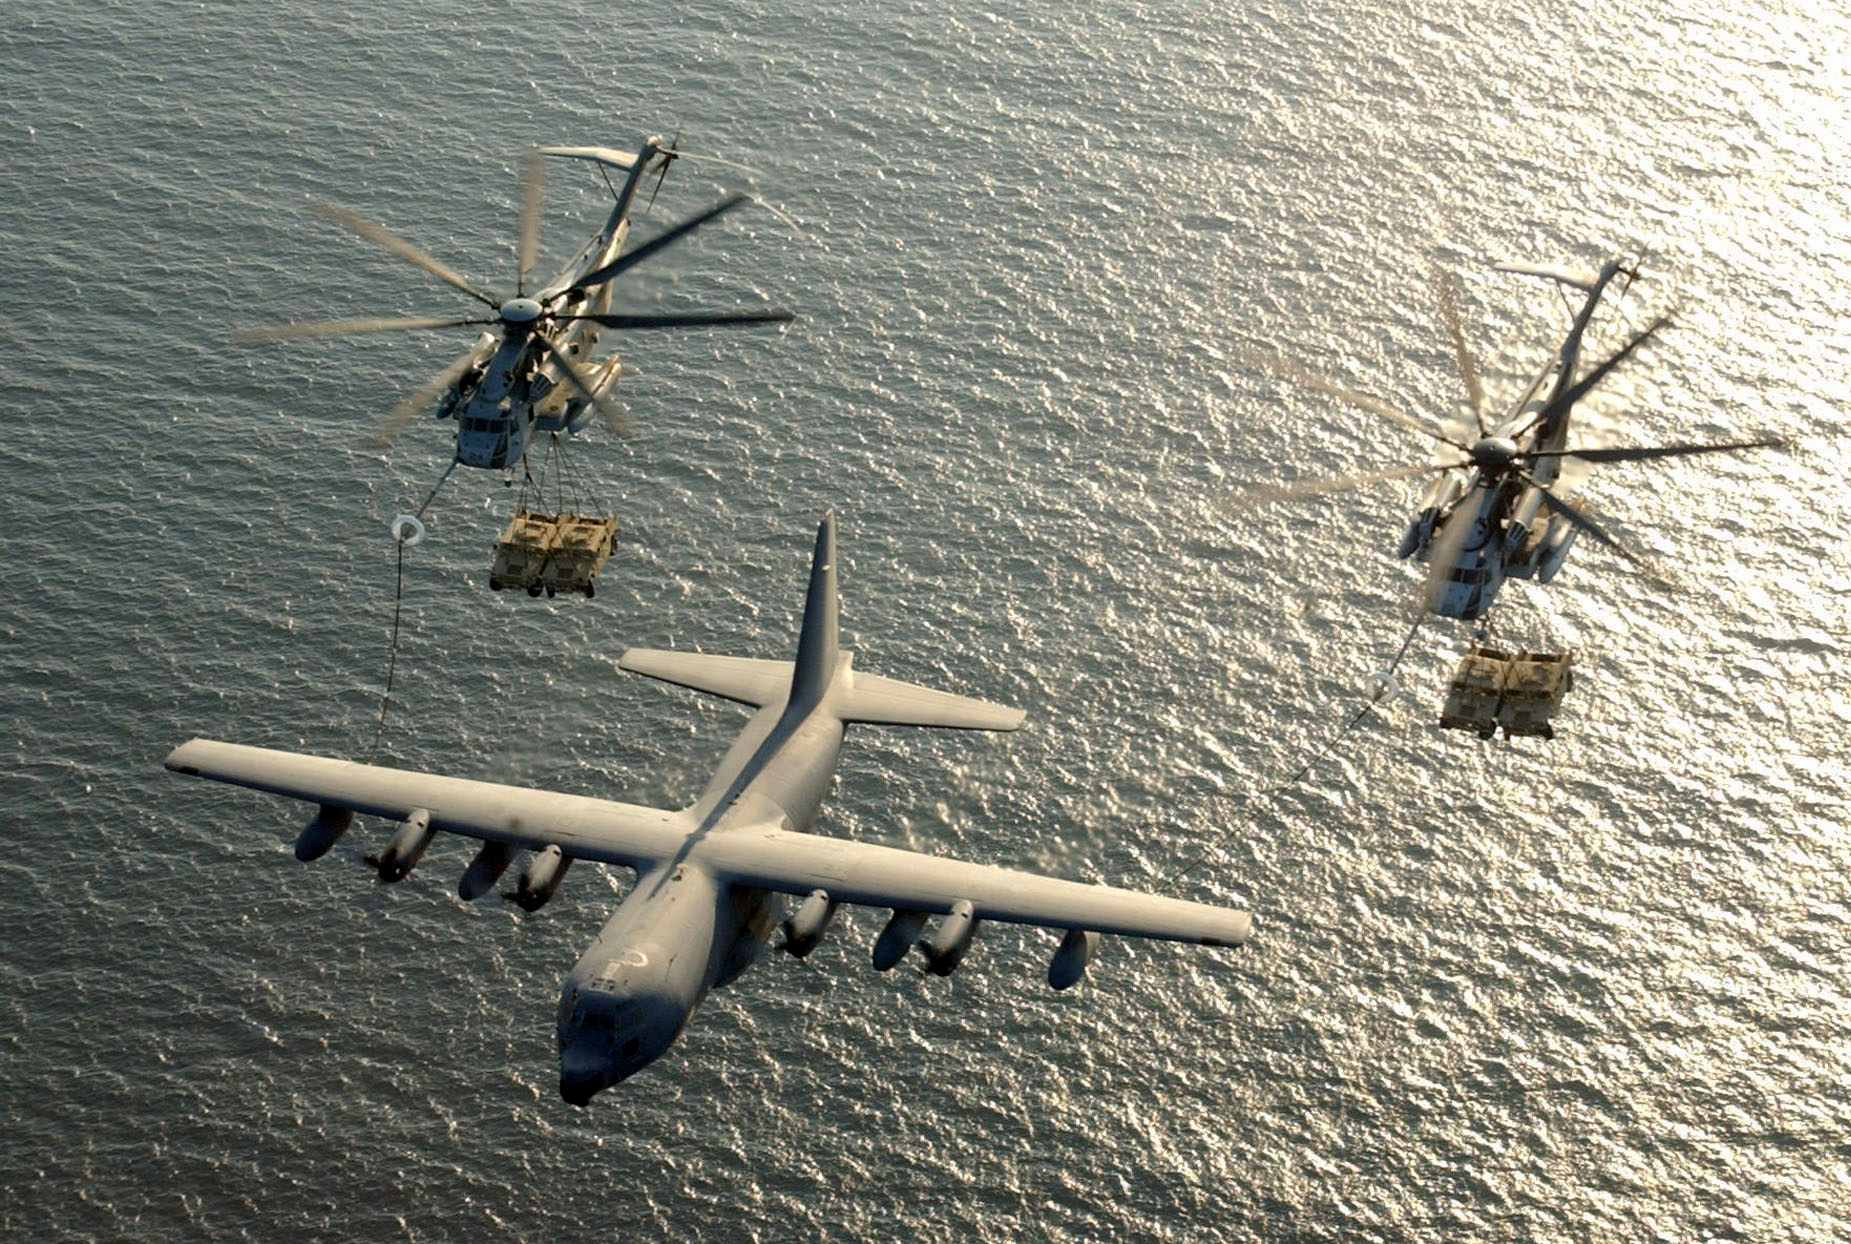 CH-53E Super Stallion helicopter military marines (47)